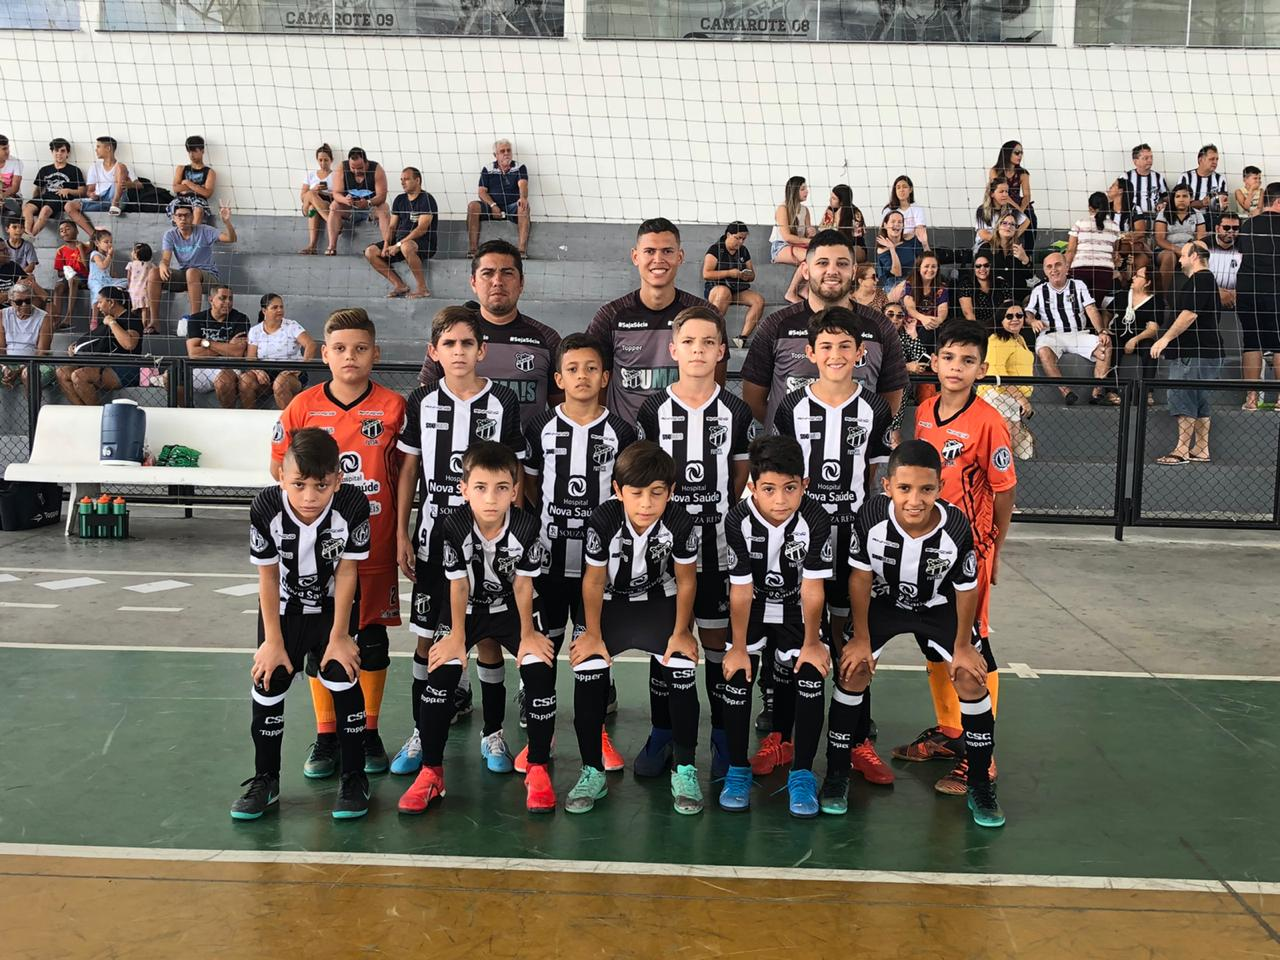 Base do futsal: Ceará conquista o primeiro turno do Cearense Sub-11